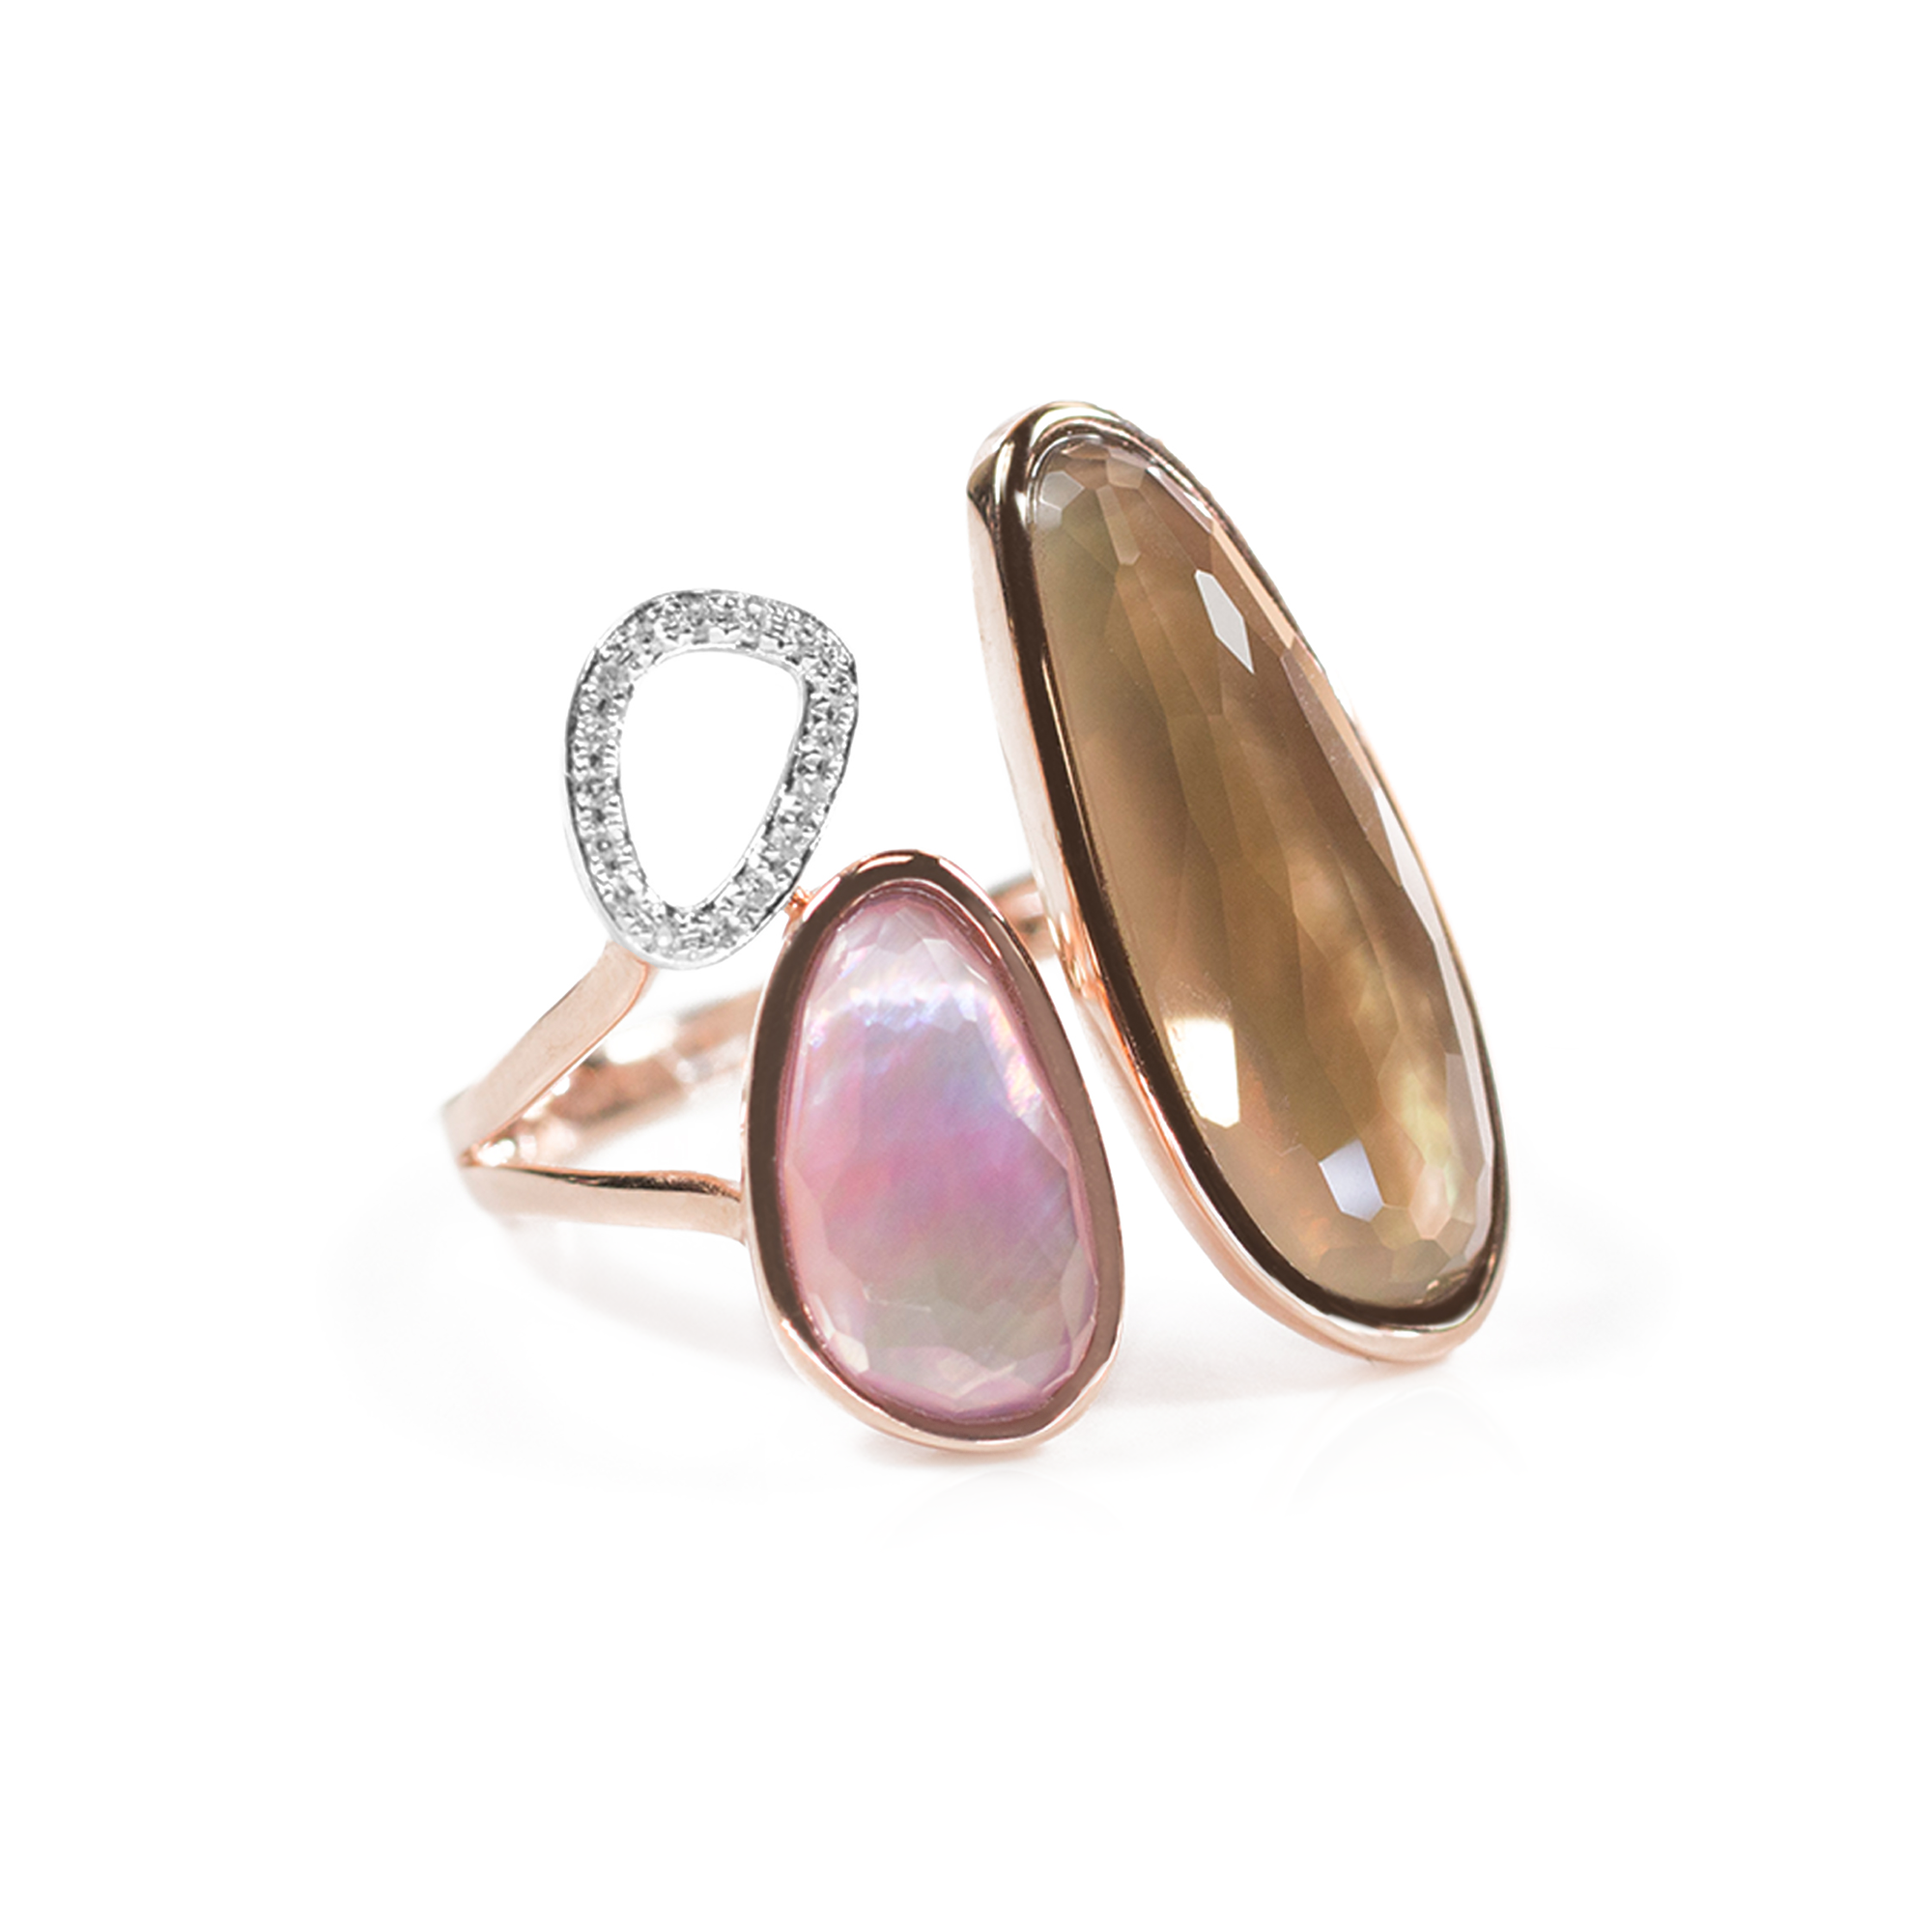 Sophia Diamond Mother of Pearl Amethyst and Smokey Quartz Ring